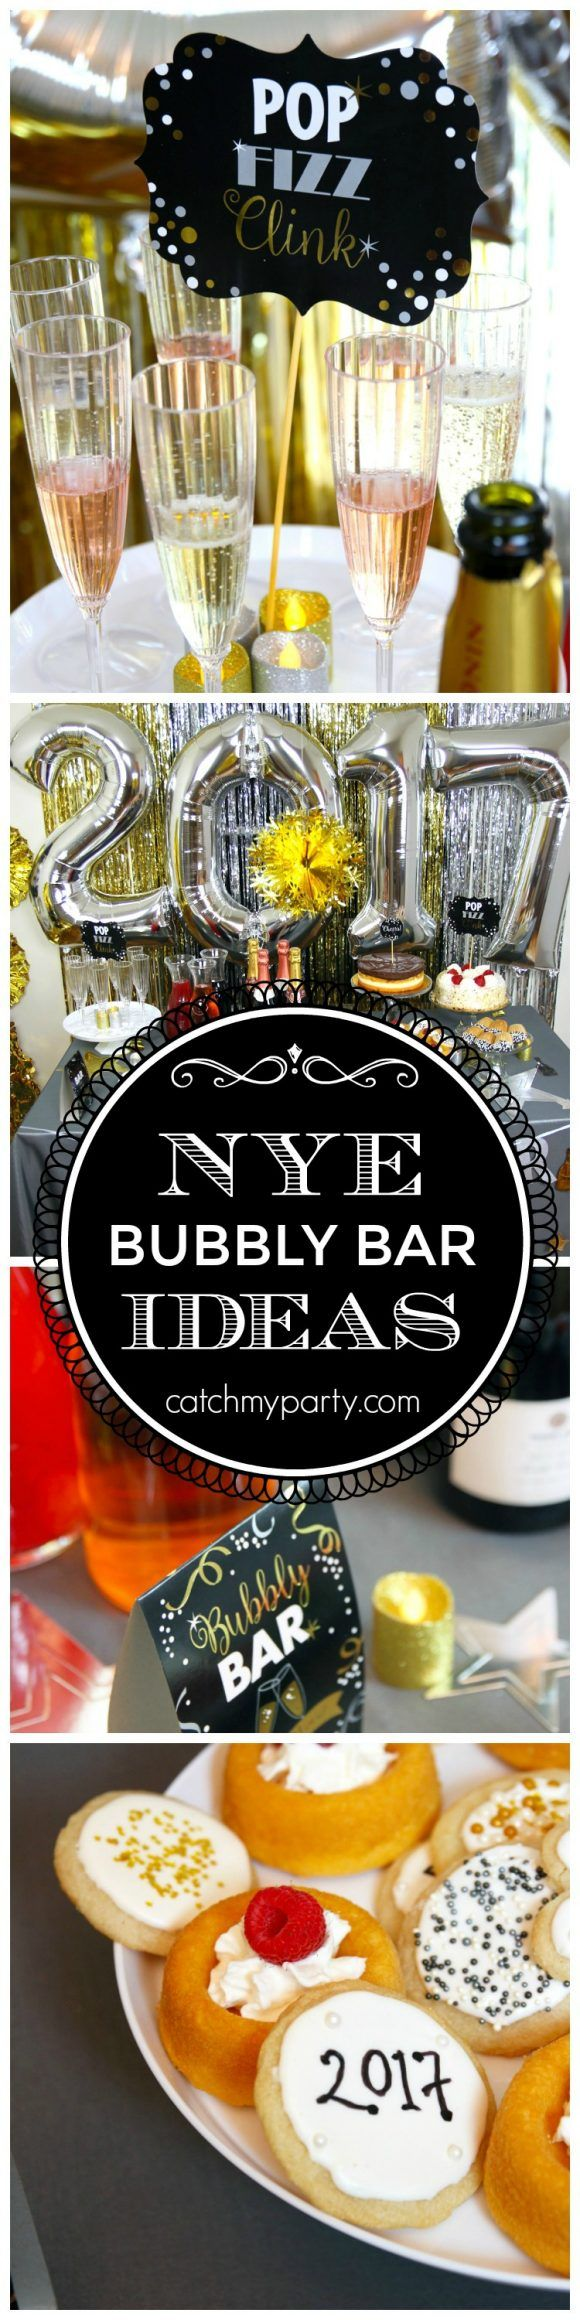 New Year's Eve Champagne Bar Party Ideas | The Catch My Party Blog | Bloglovin'